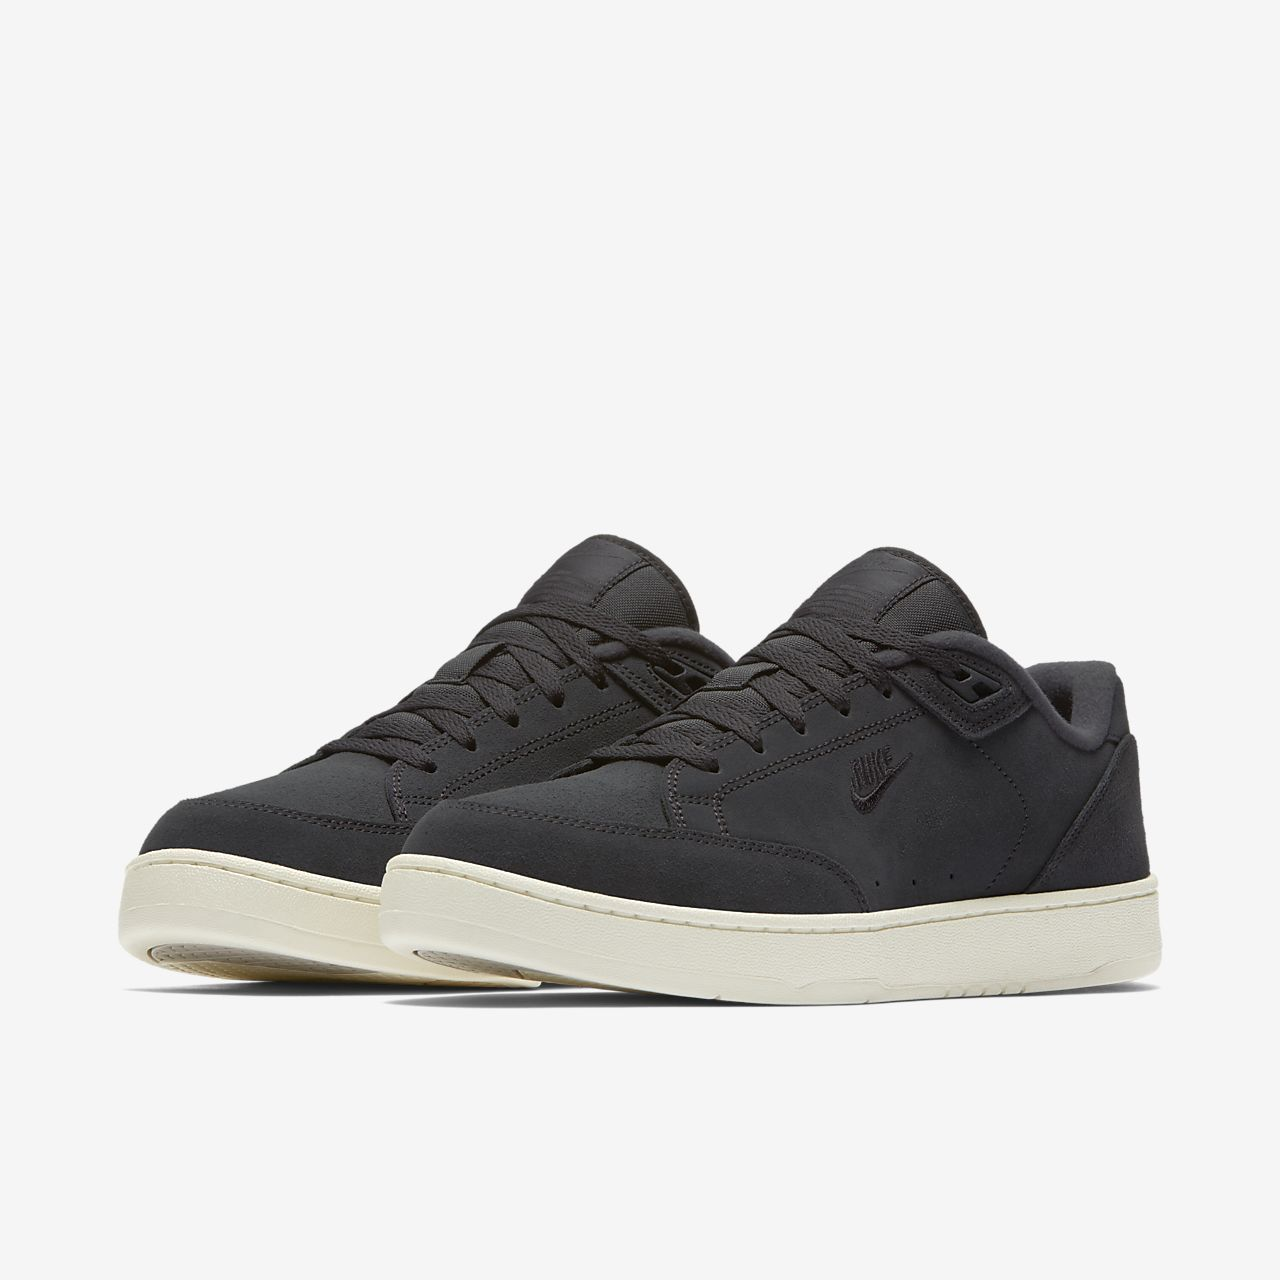 wholesale dealer e355f c6507 ... Chaussure Nike Grandstand II Suede pour Homme